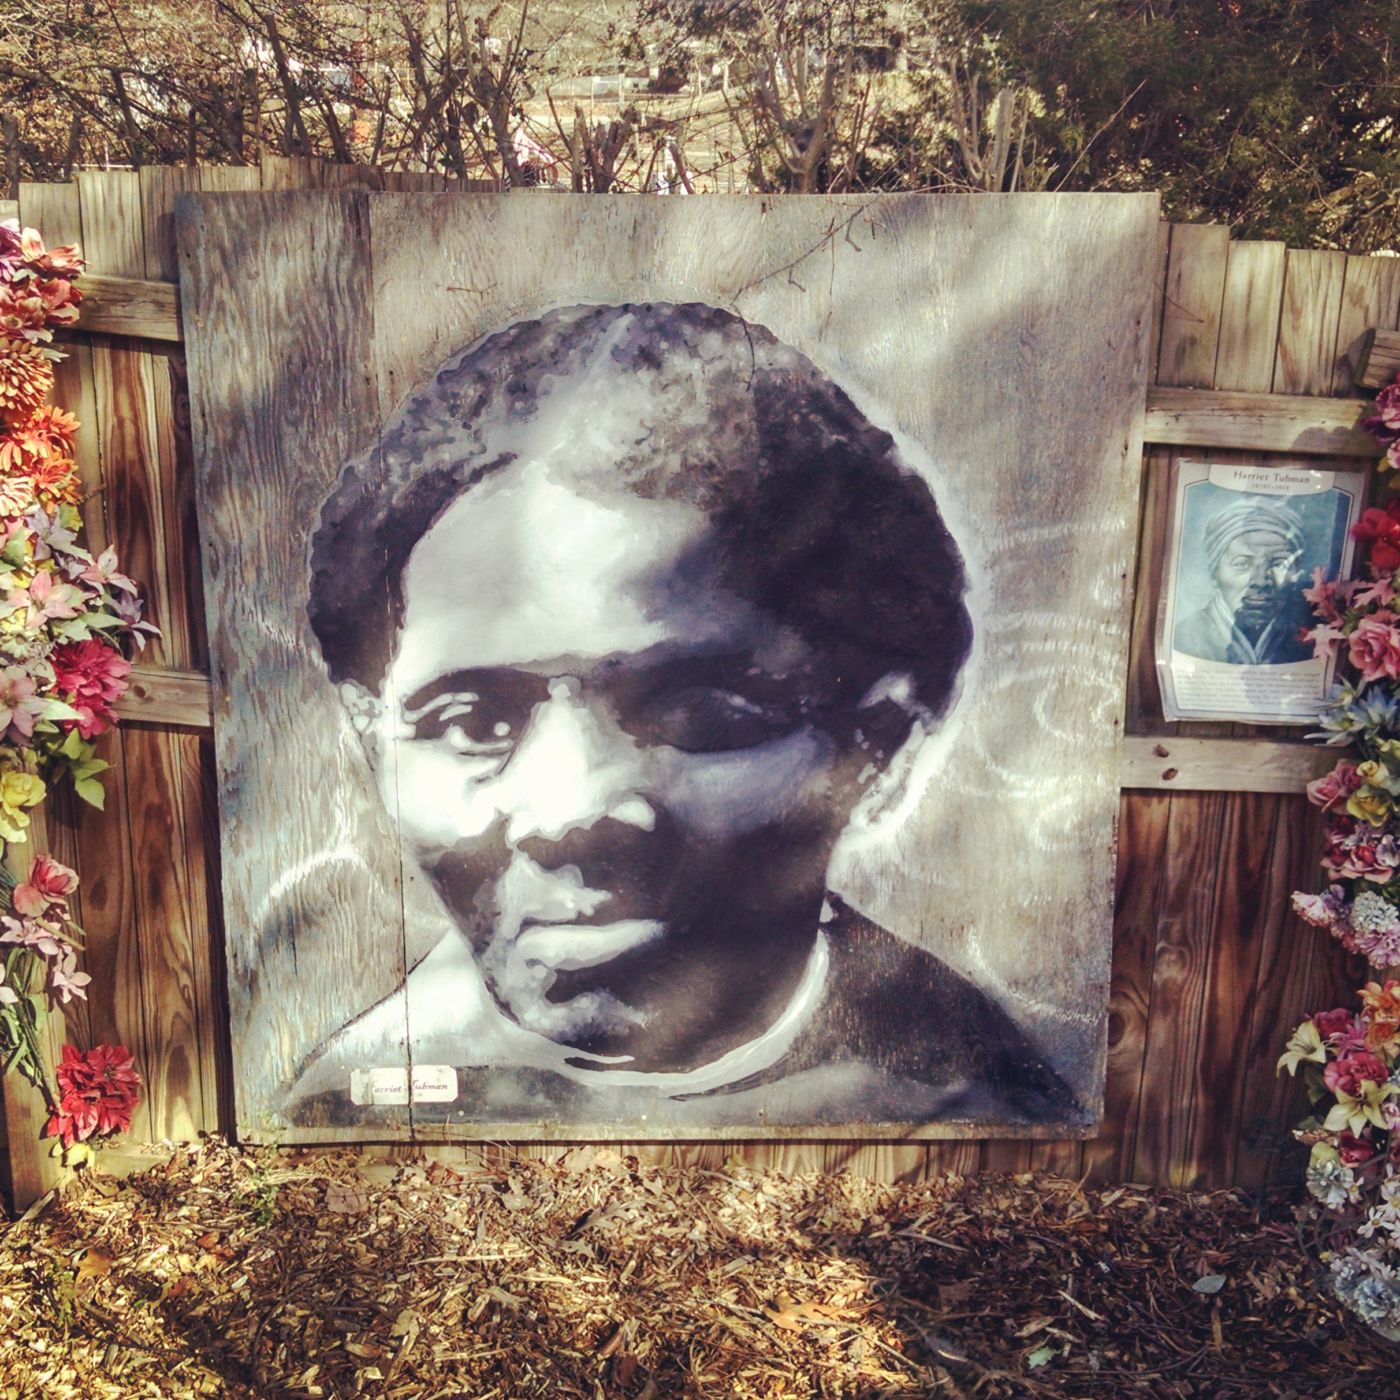 A mural of Harriet Tubman in place at the Burton Street Garden in Asheville, North Carolina